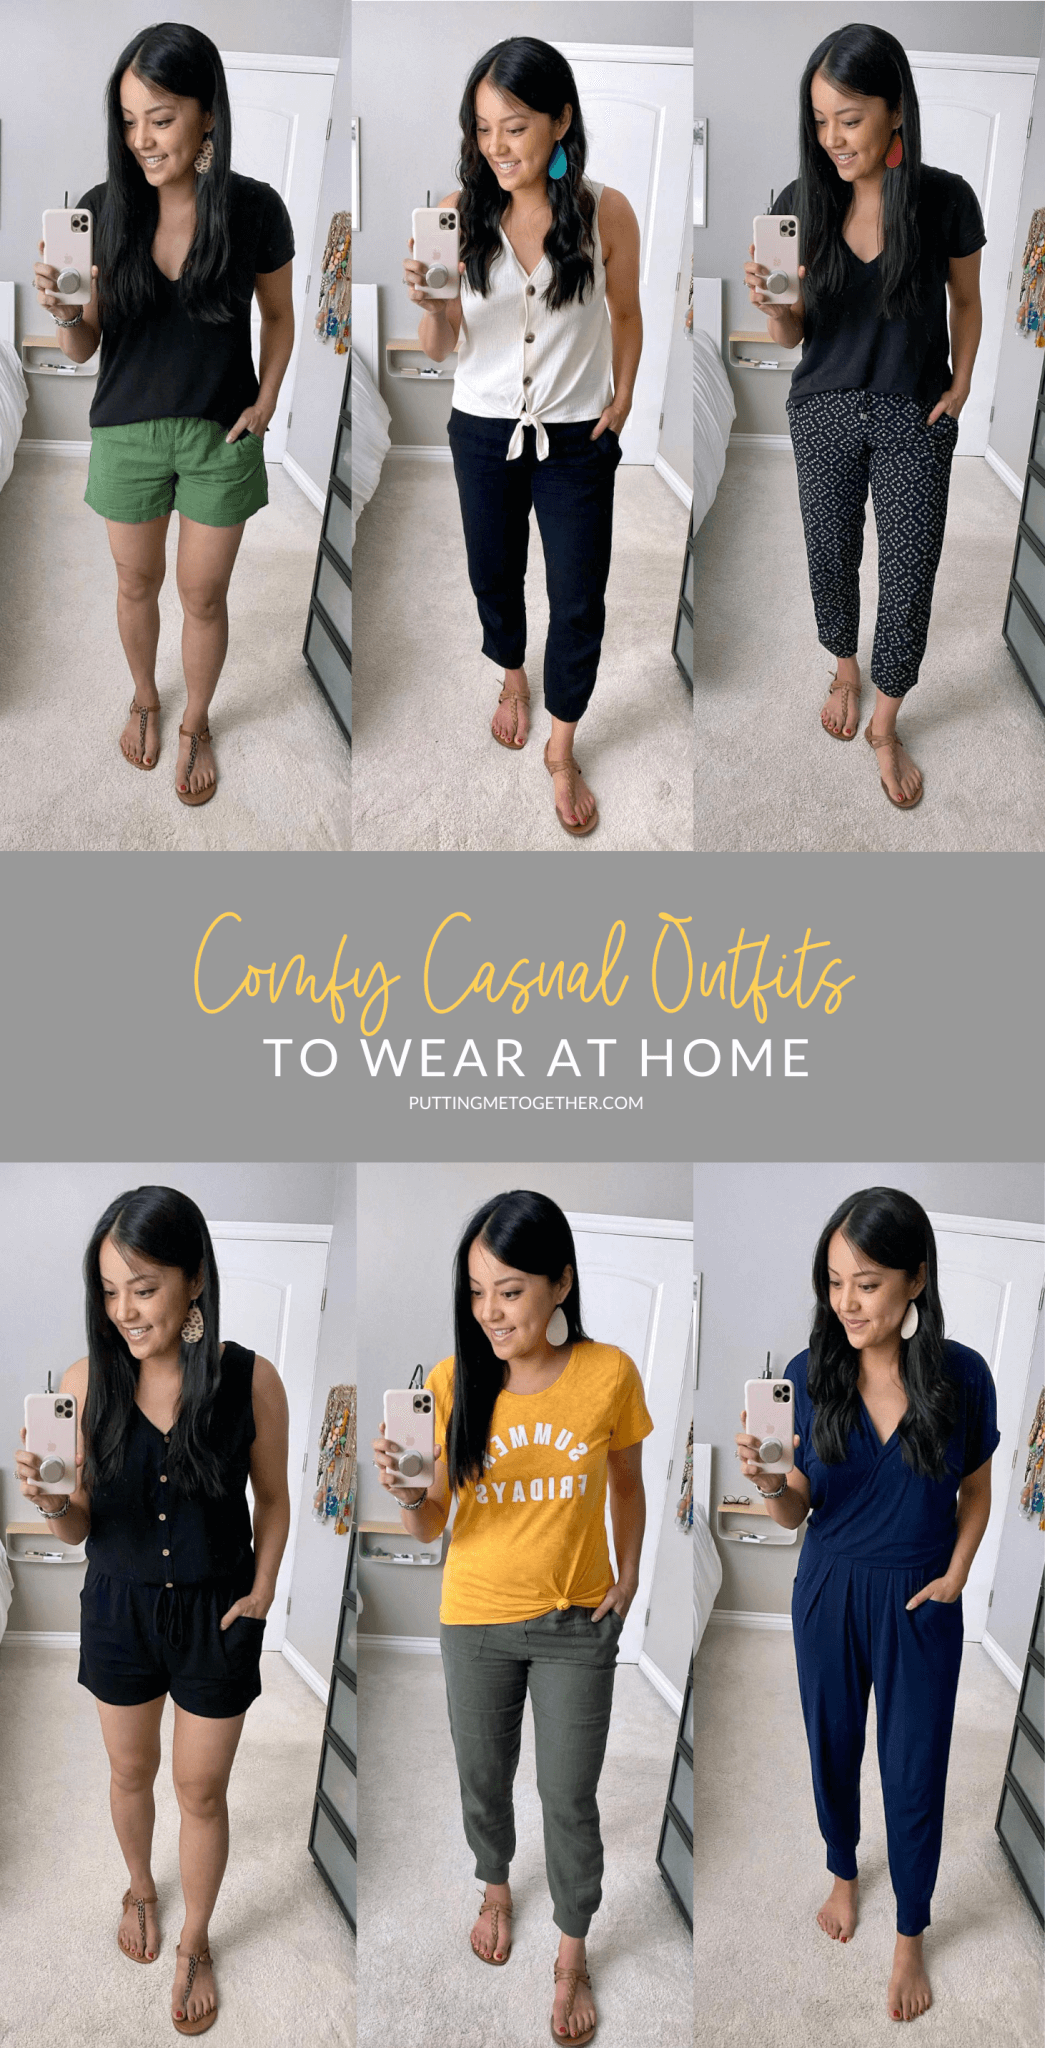 Comfy Casual Outfits While At Home